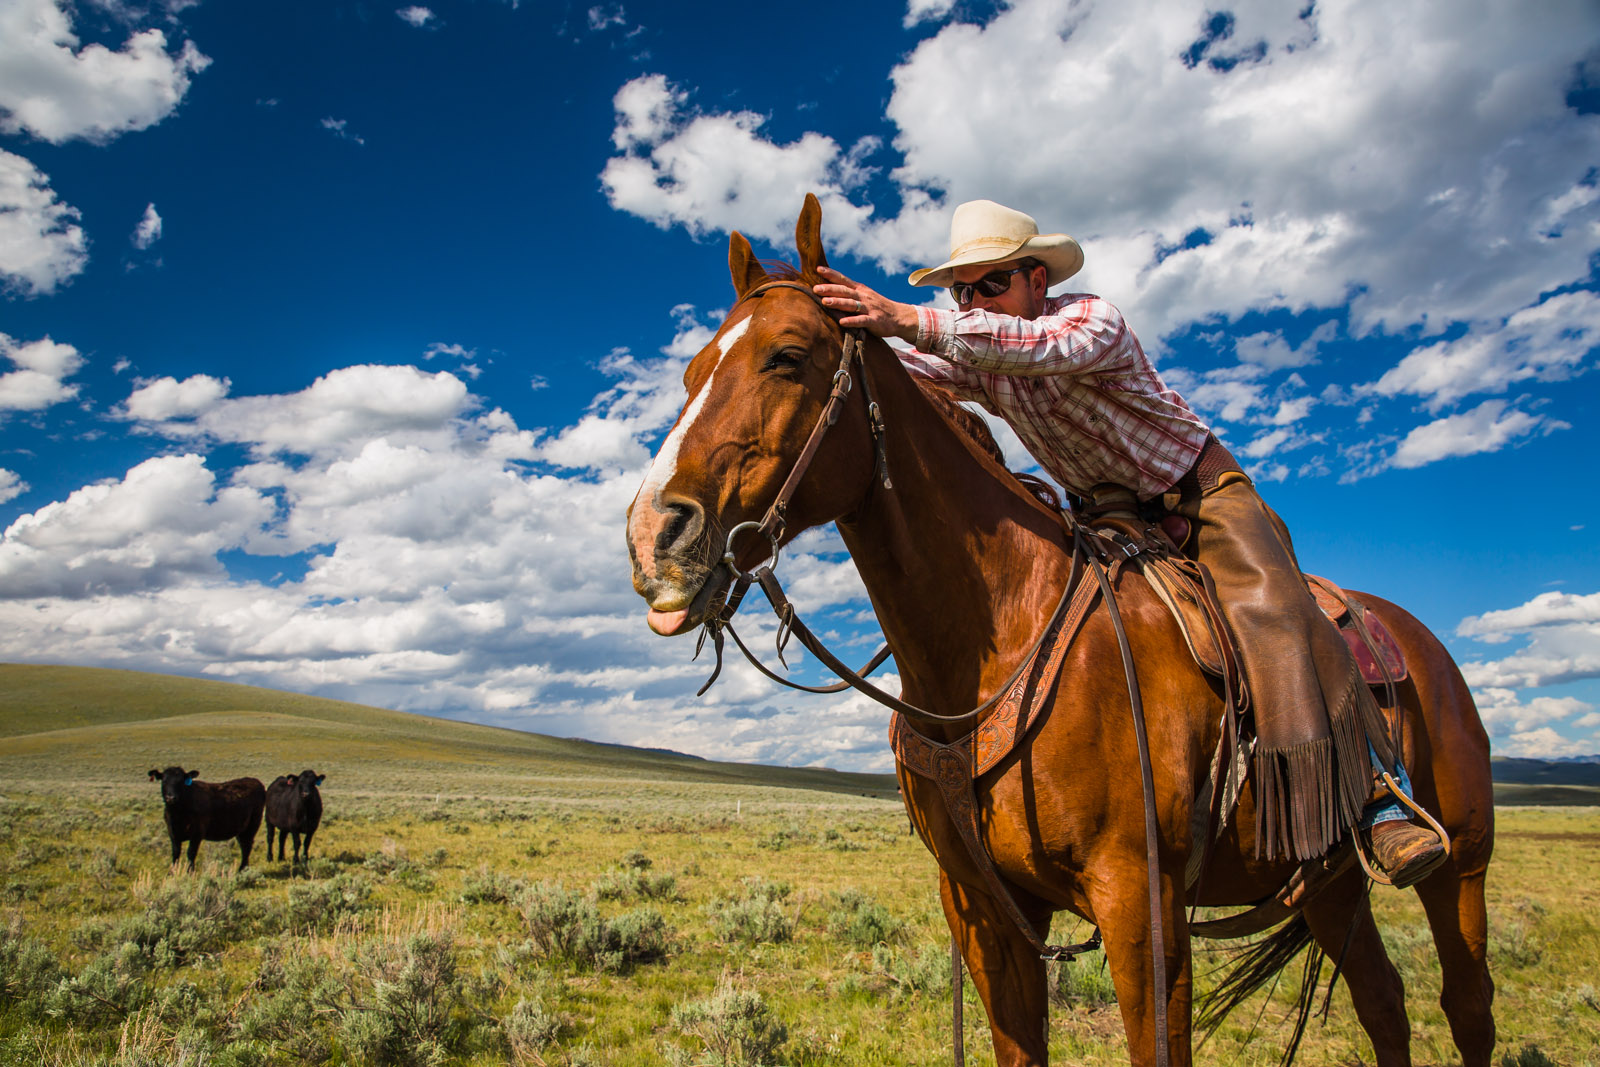 montana, usa, travel, wanderlust, horses, centennial, valley, yellowstone, jbarl, ranch, cowboy, photojournalism, bigskycountry, outwest, inmontana, montanamoment, onassignment, animals, cute, funny face